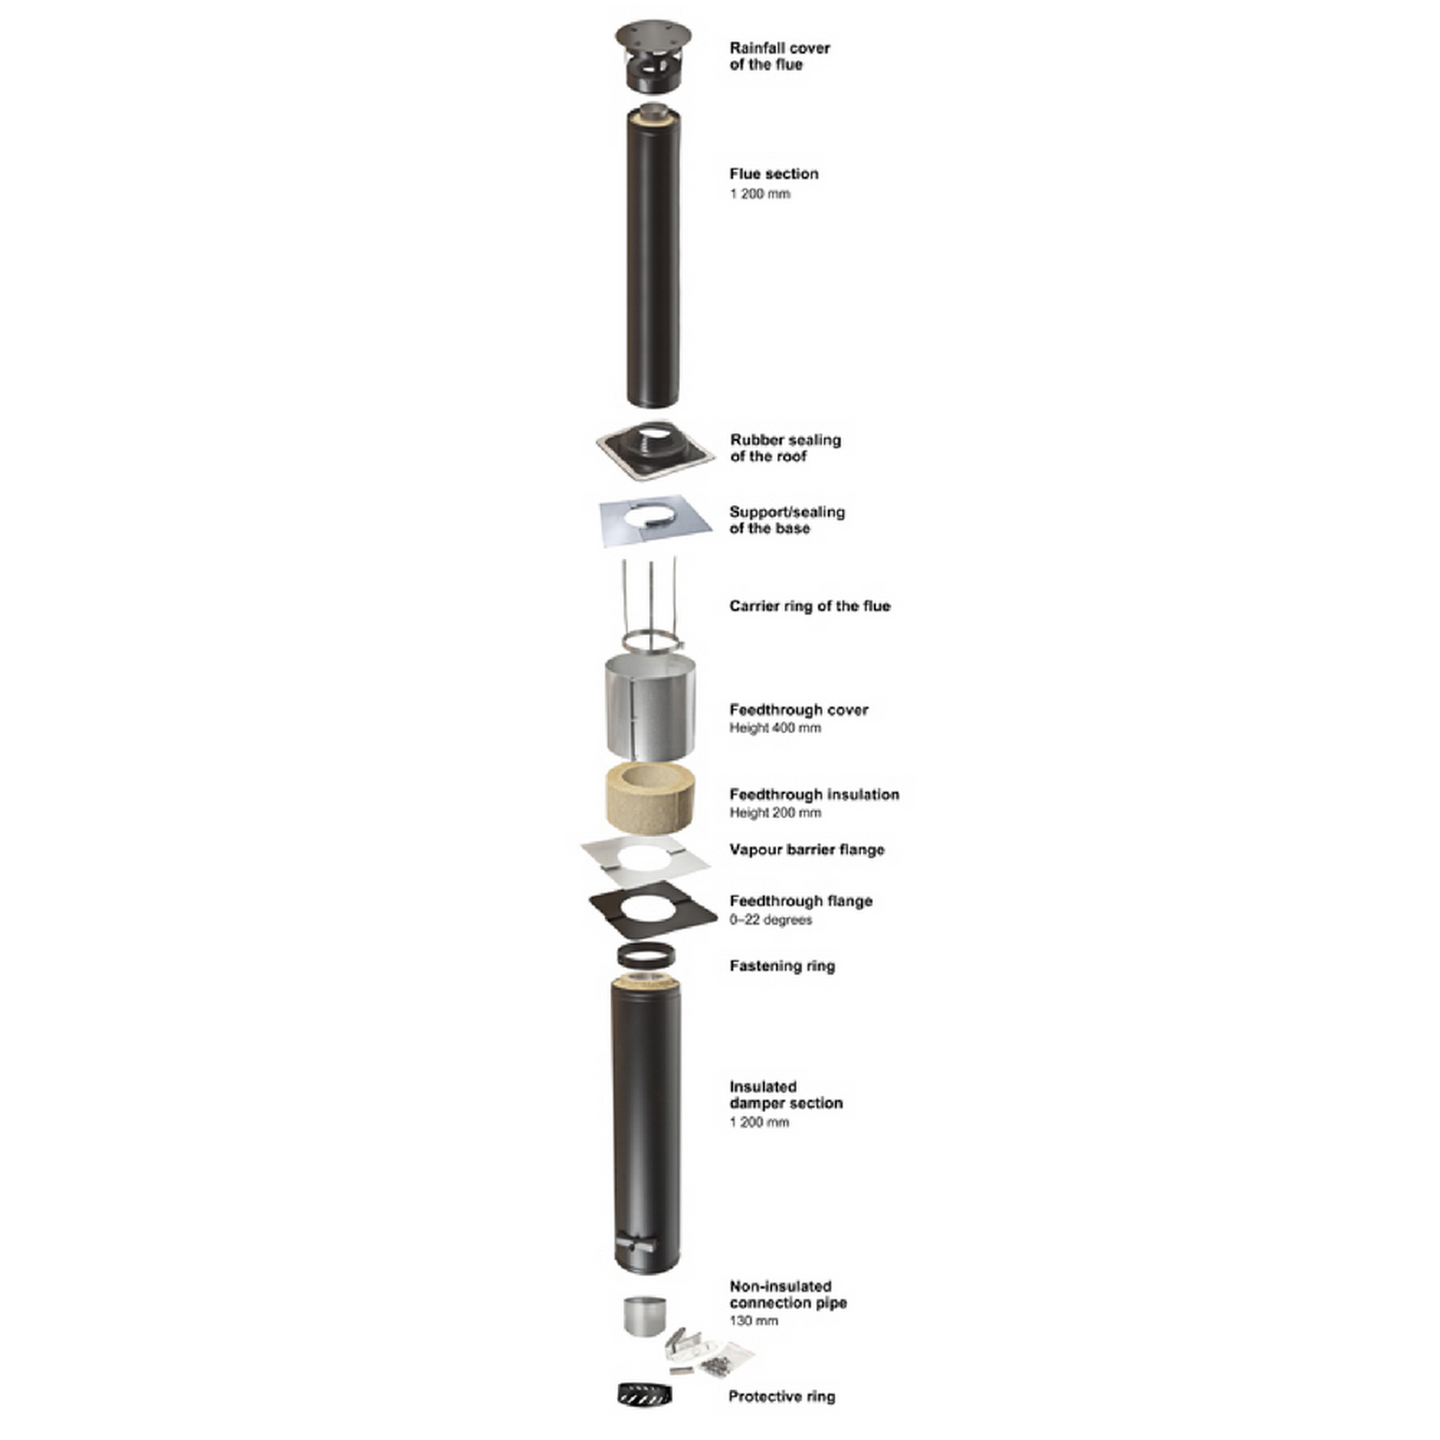 Kota Insulated Steel Flue / Chimney Kit 24 D-150mm & Extension Tubes Kota Steel Flue Kit 24 D-150mm (Diameter 150mm) Flue parts, adapters & flanges Finnmark Sauna